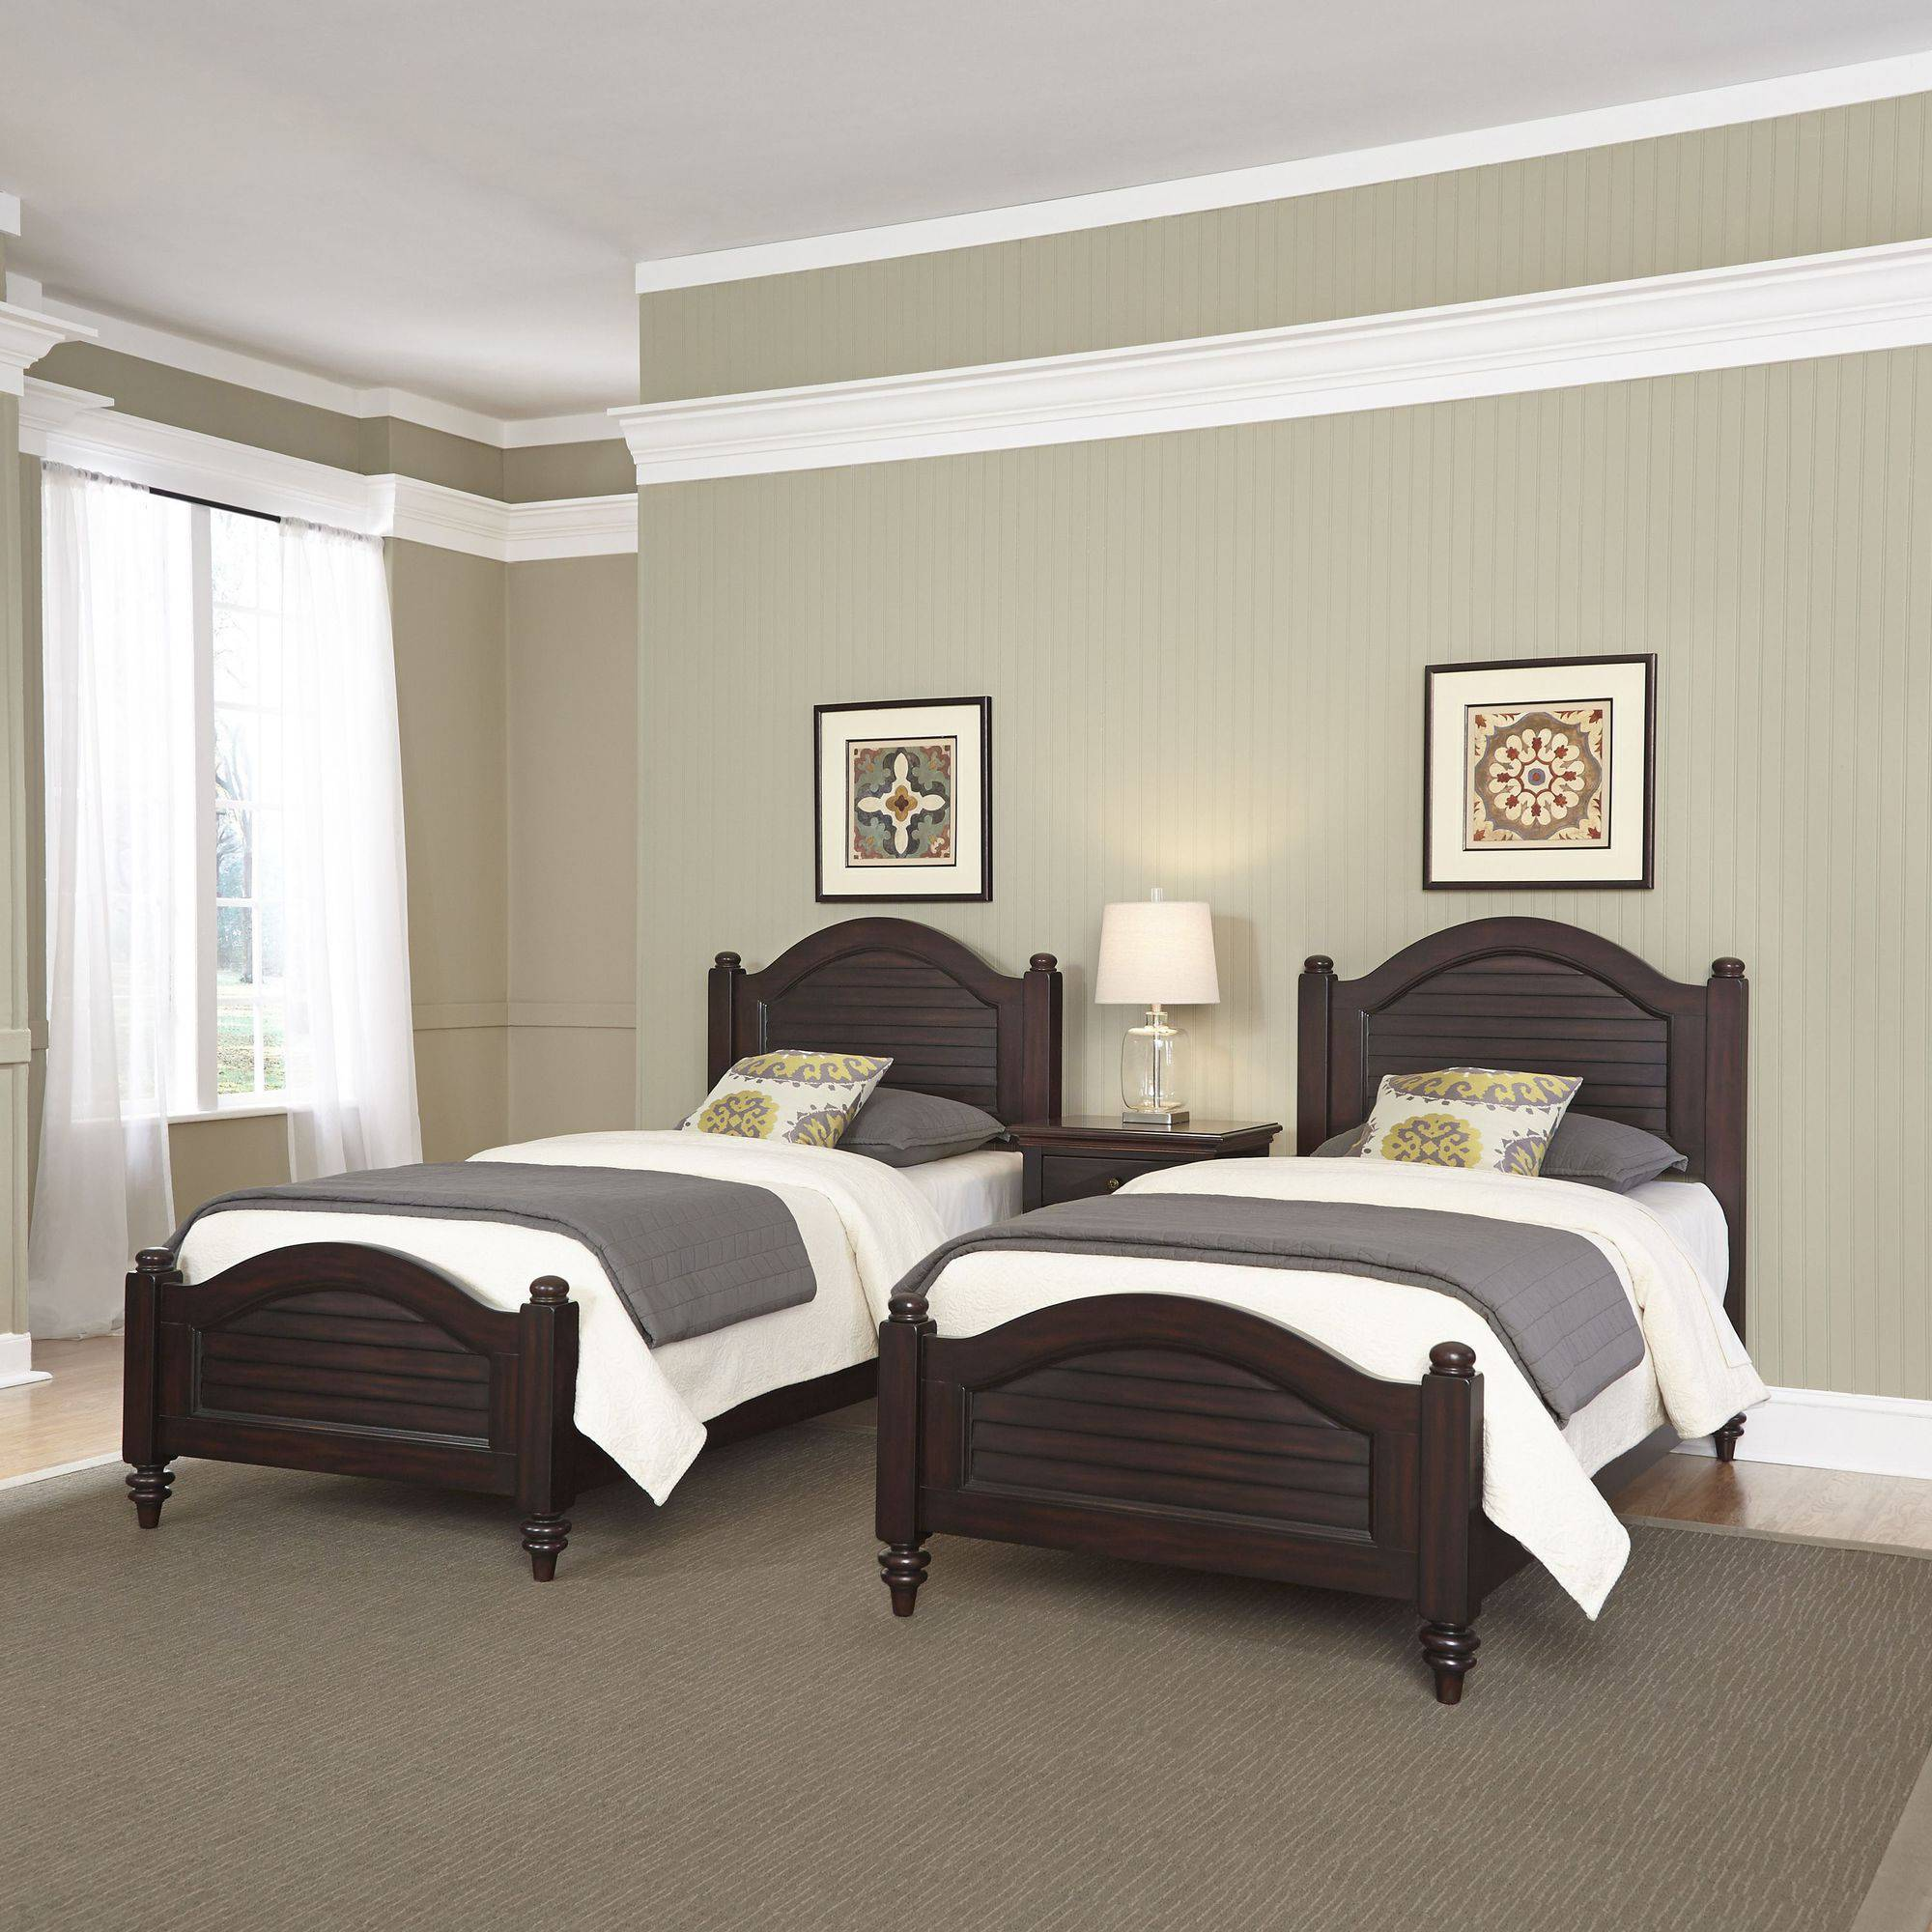 Bermuda Espresso Two Twin Beds and Night Stand